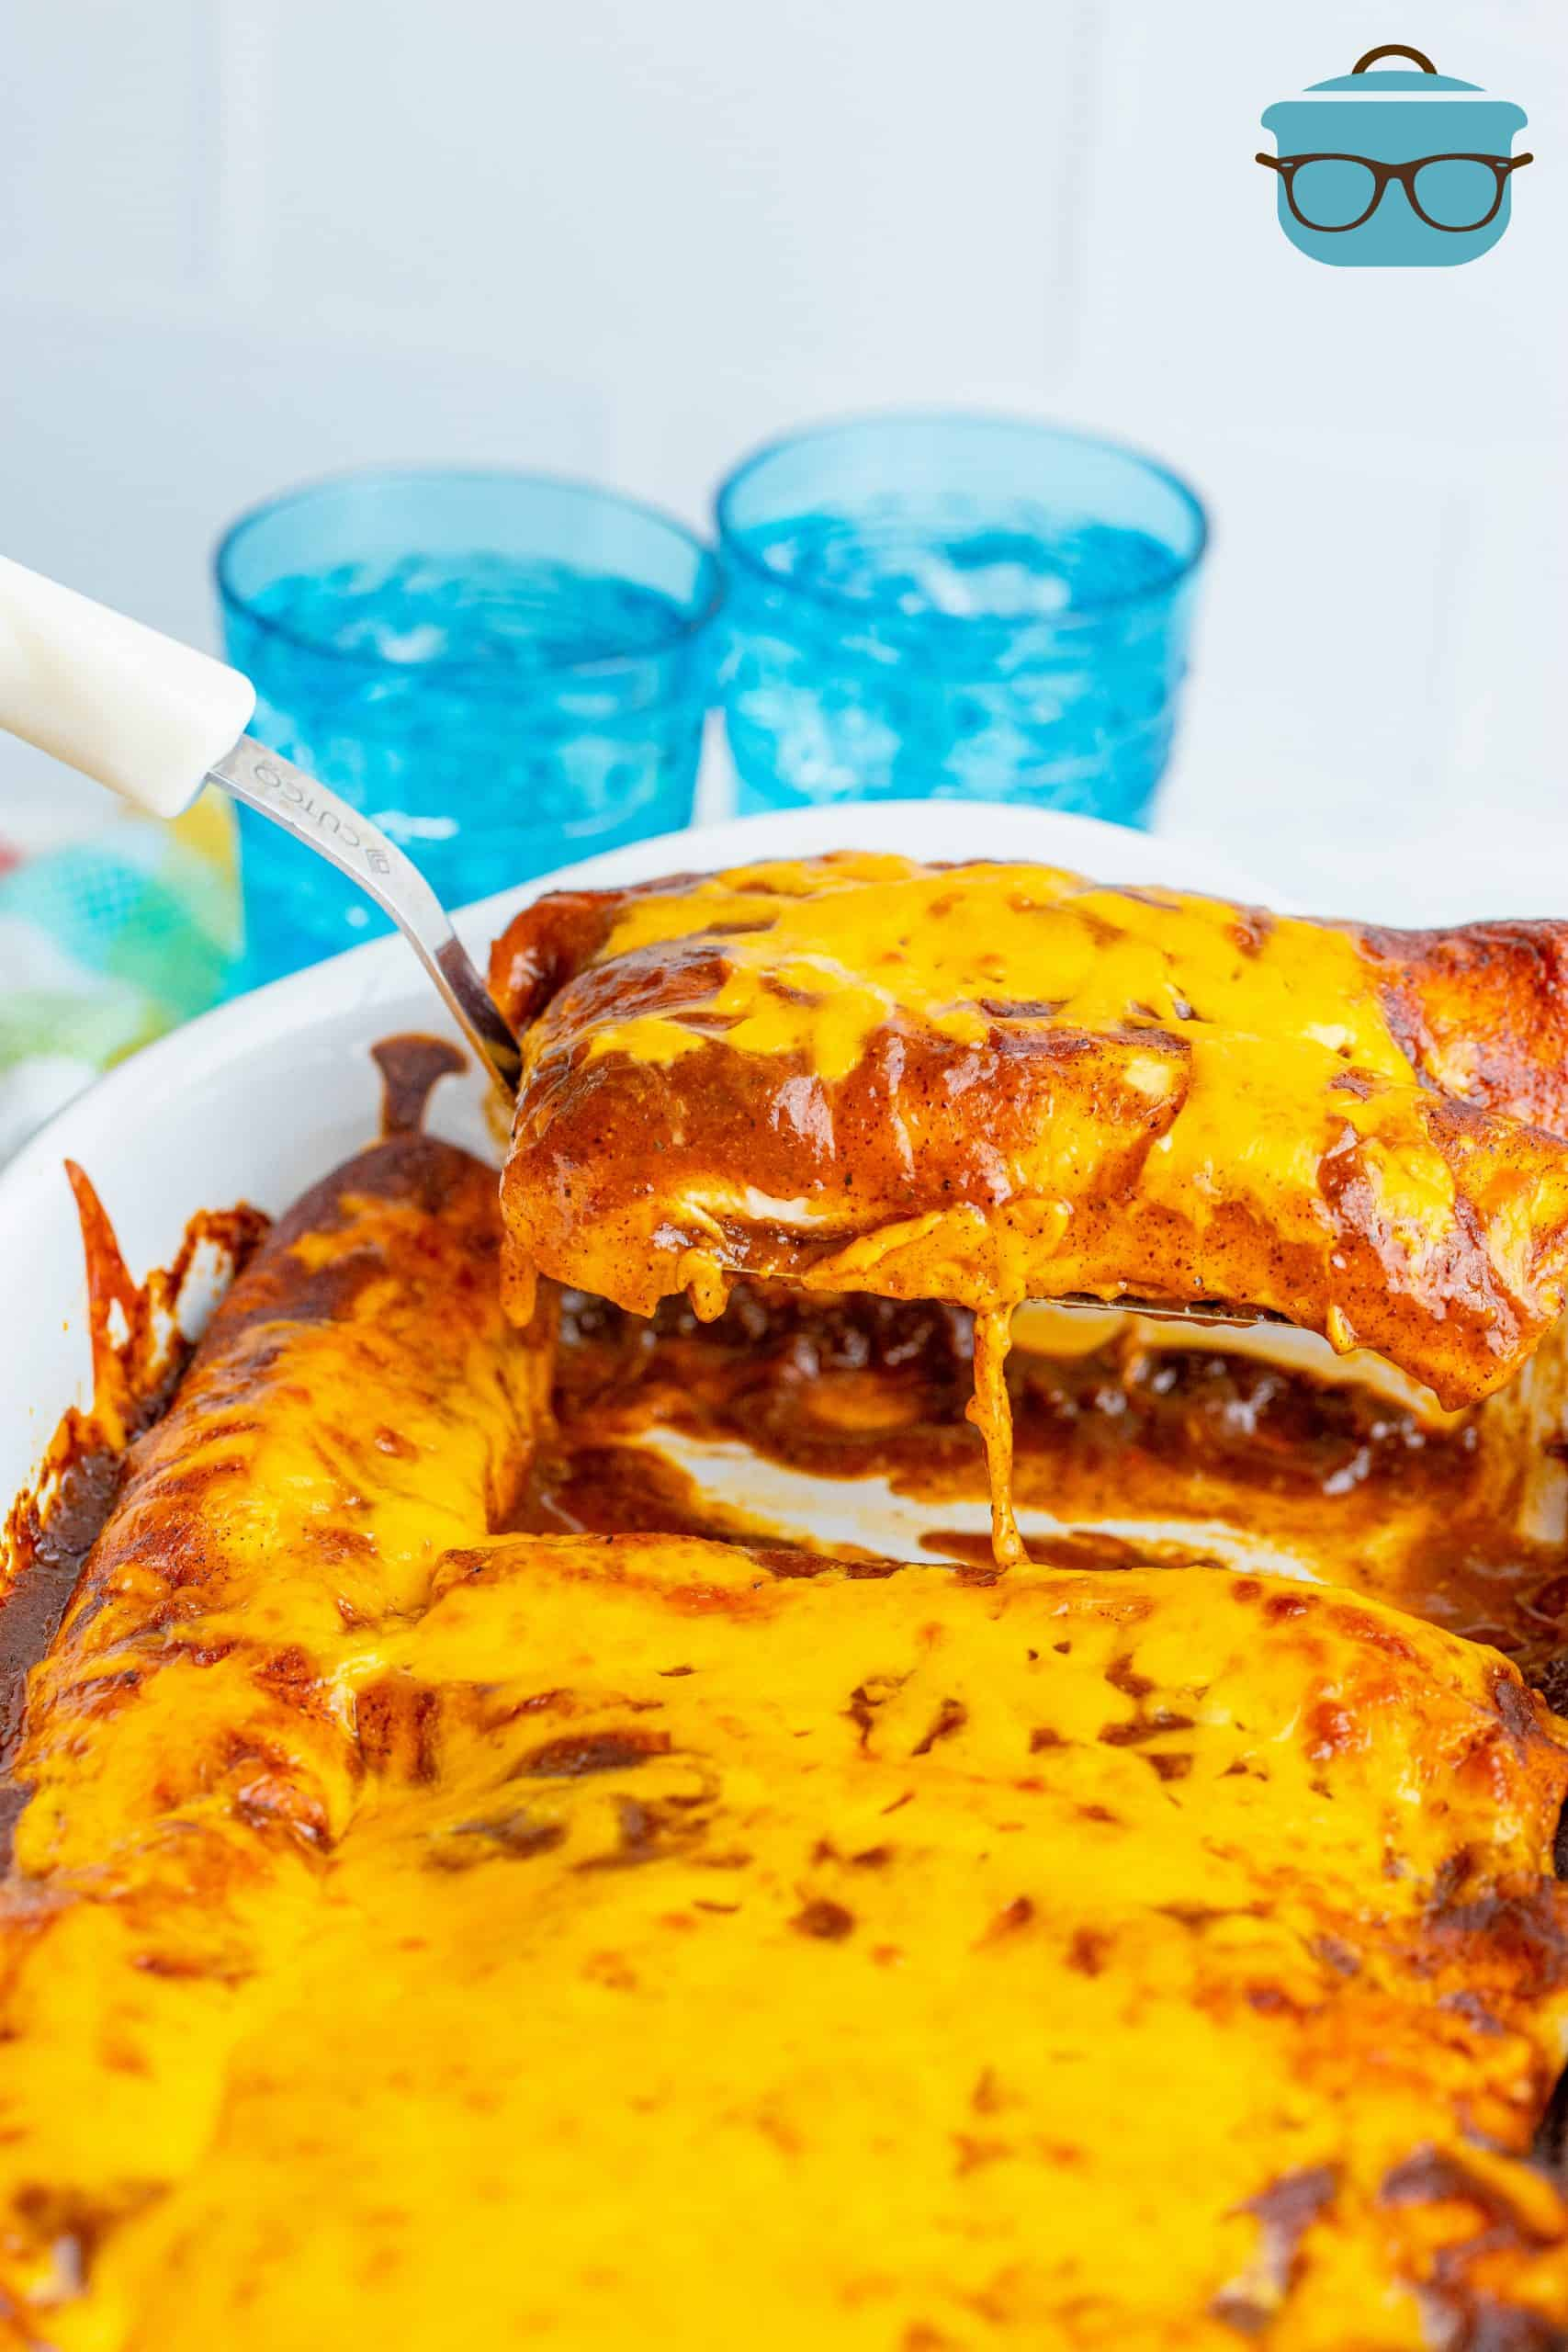 scooping out two red sauce enchiladas out of a baking dish with a spatula.